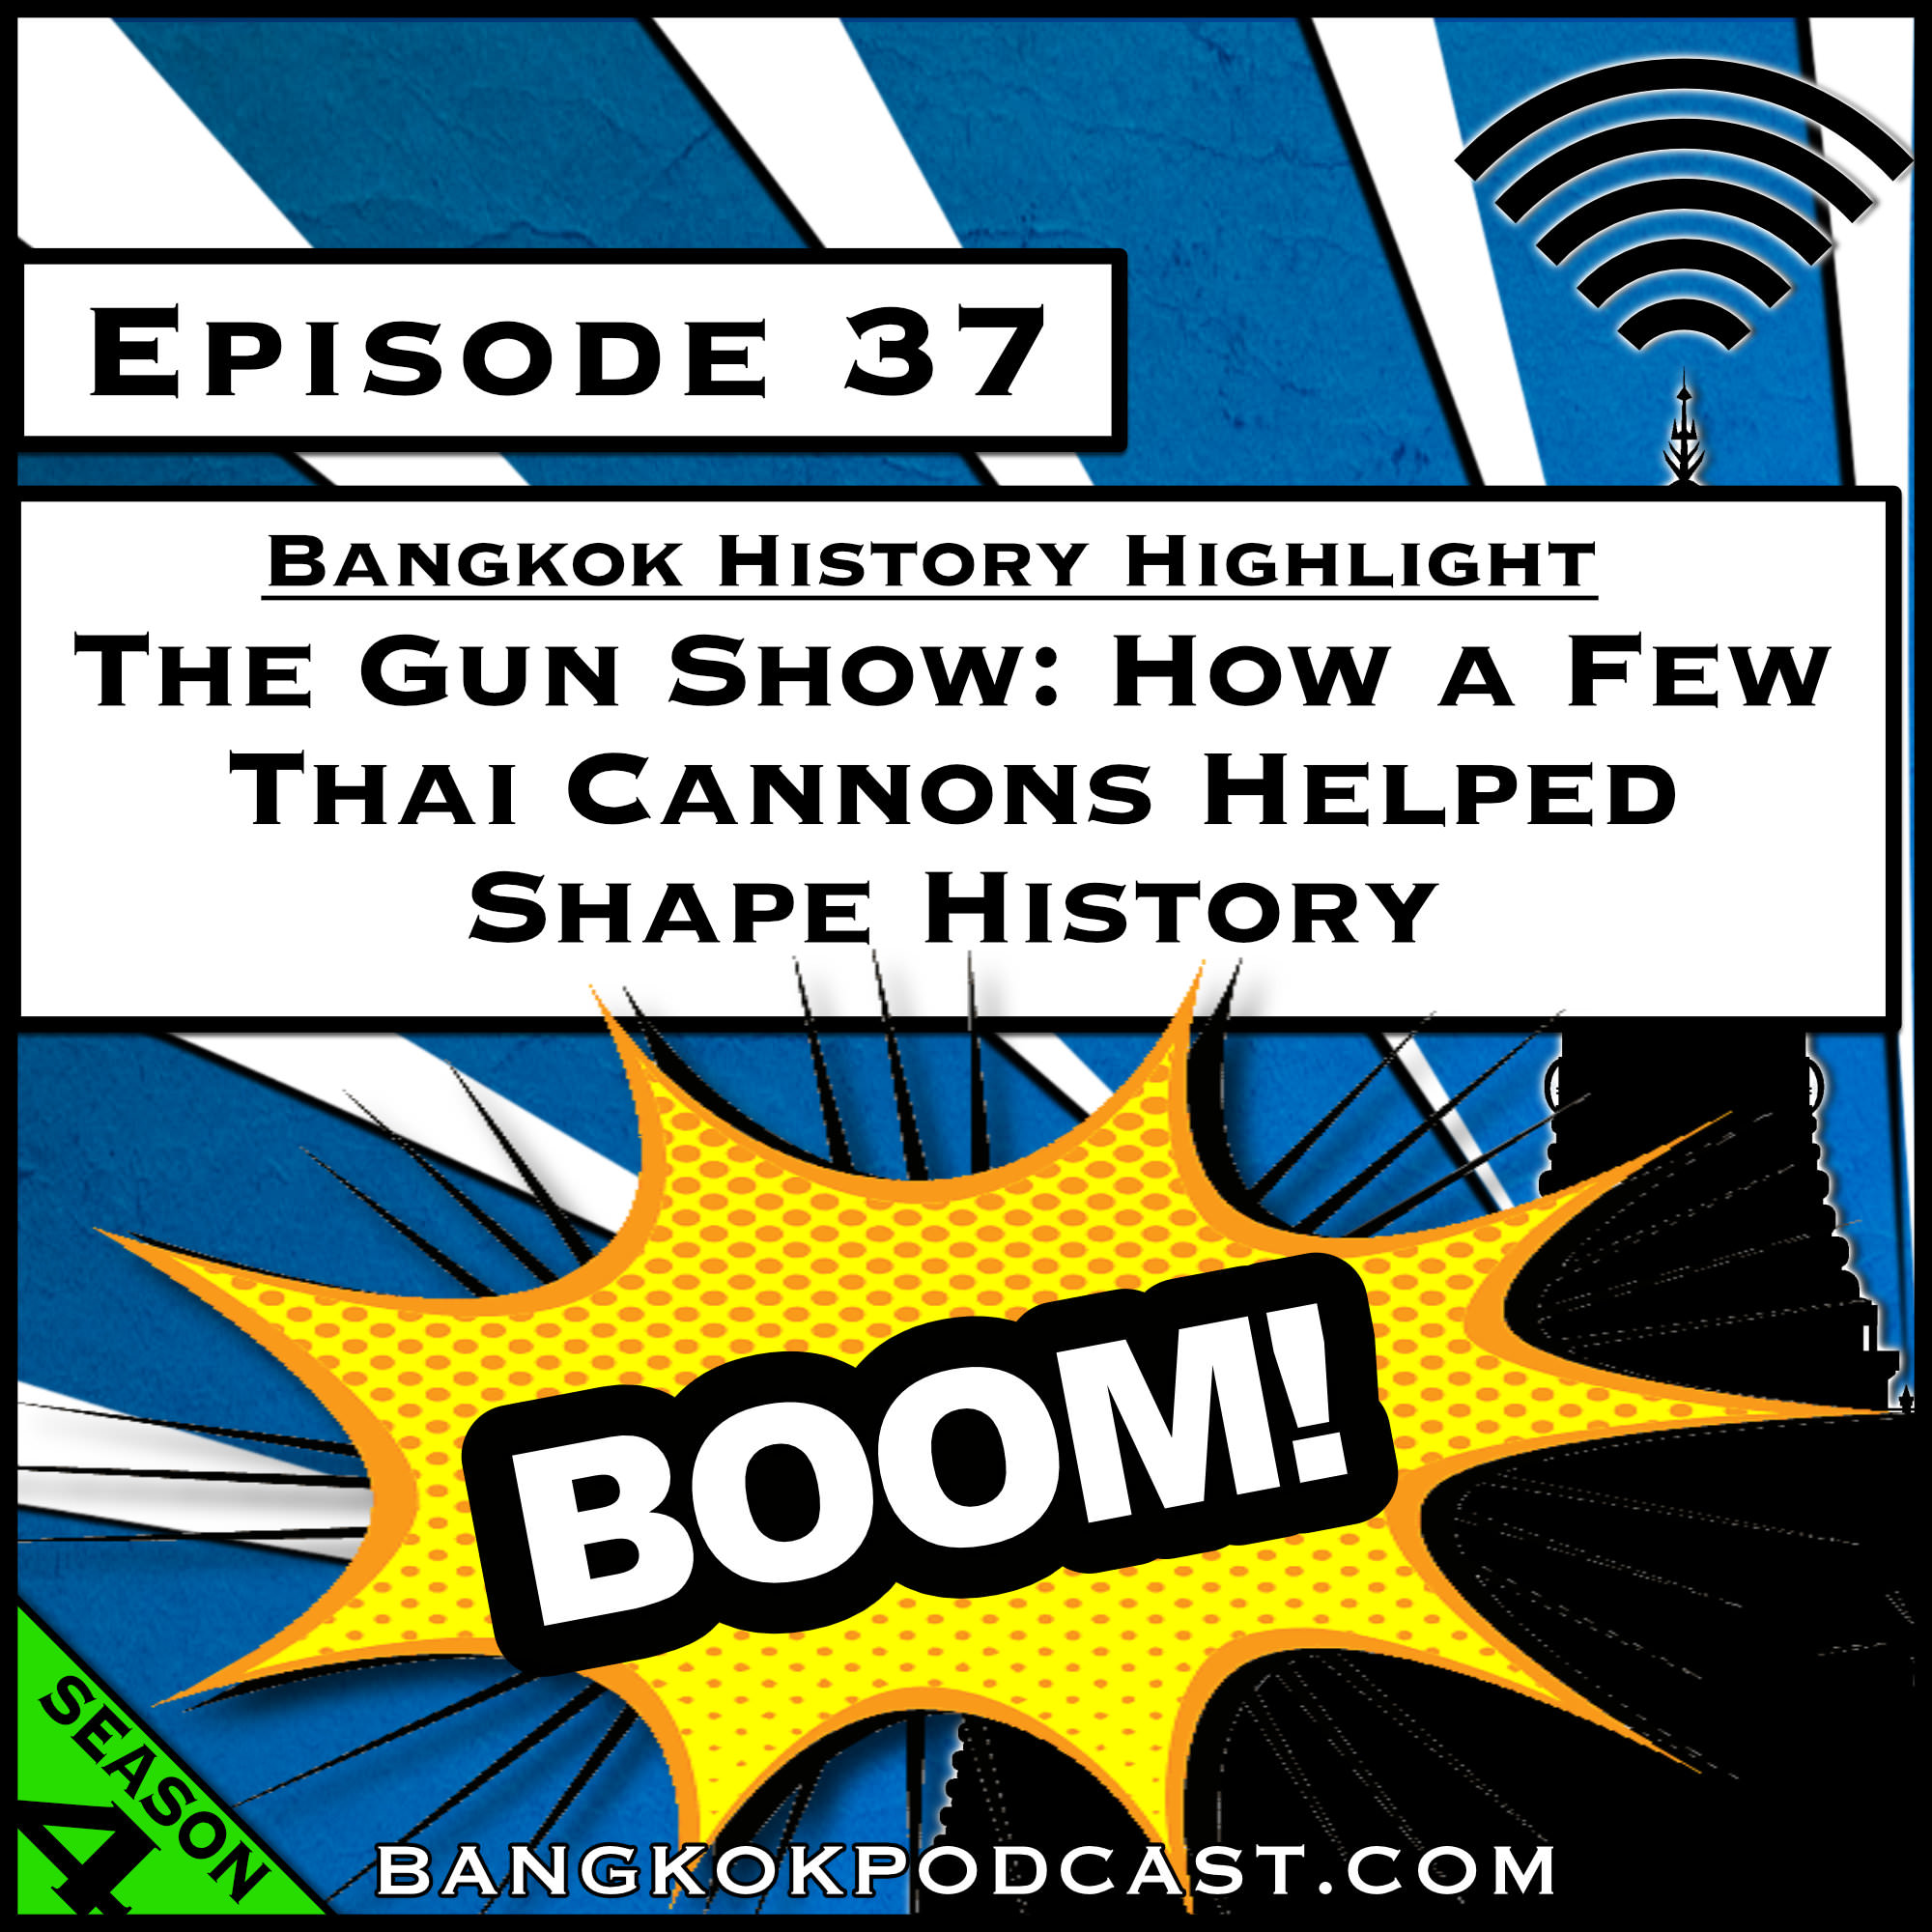 The Gun Show: How a Few Thai Cannons Helped Shape History [Season 4, Episode 37]